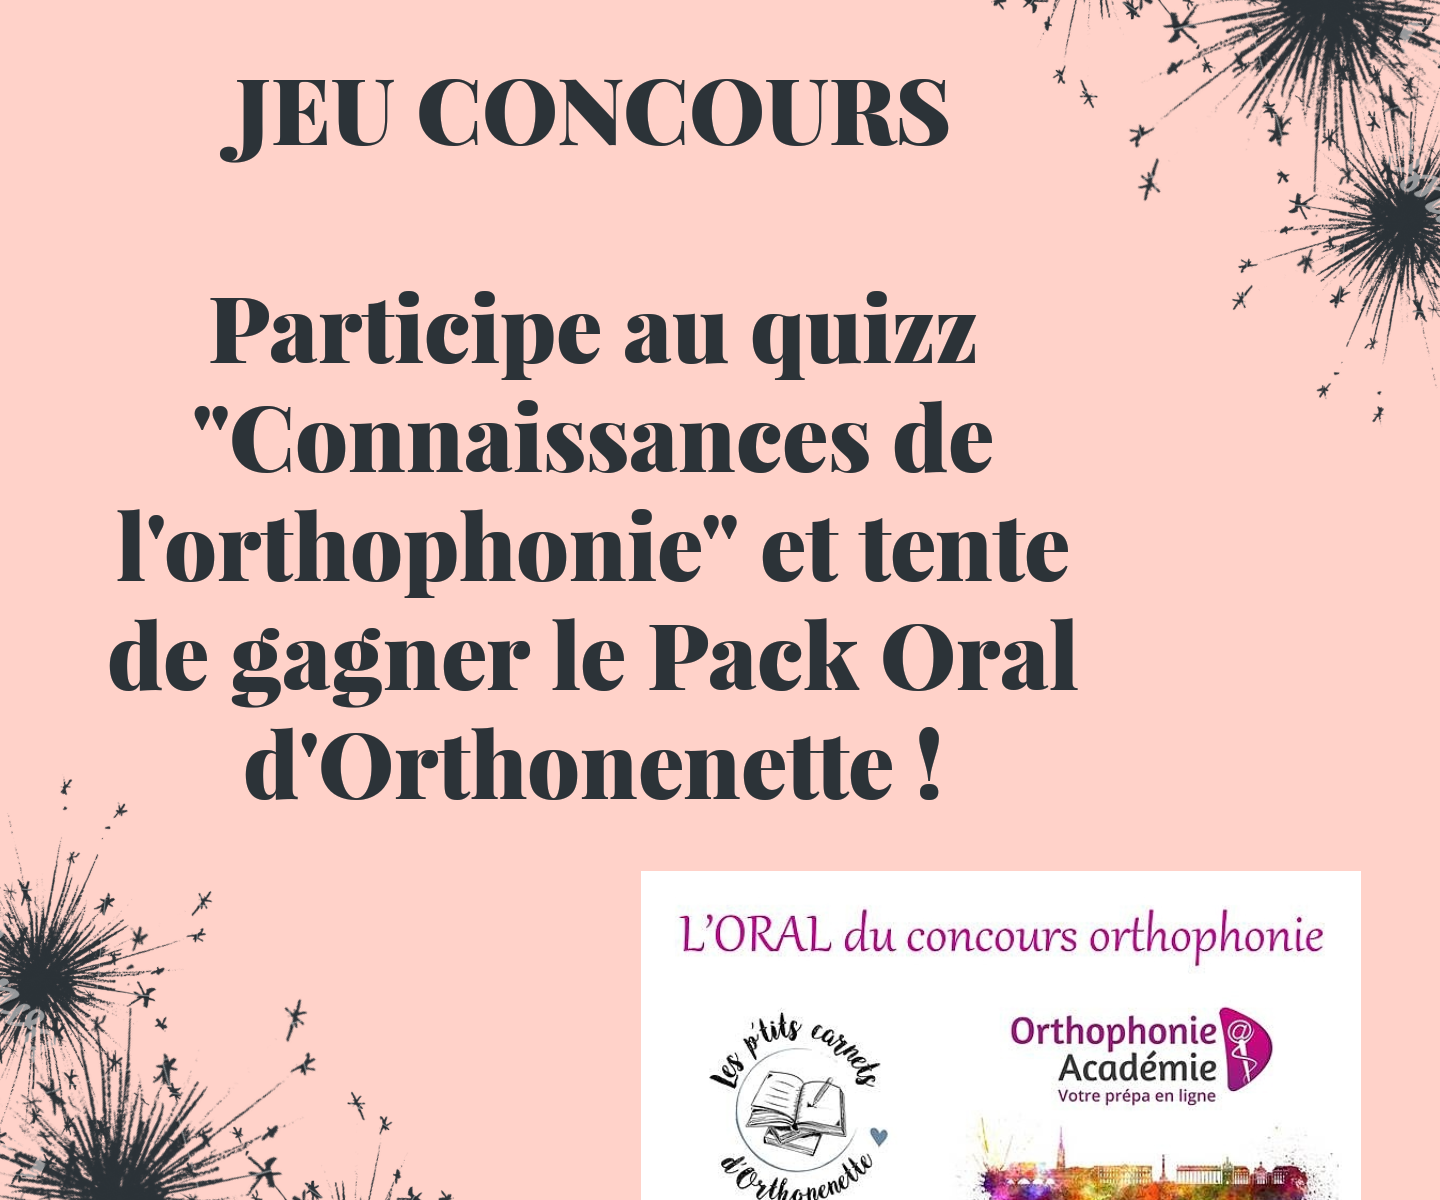 oral concours orthophonie lille 2018 inscription concours auxiliaire de puericulture aix en provence. Black Bedroom Furniture Sets. Home Design Ideas